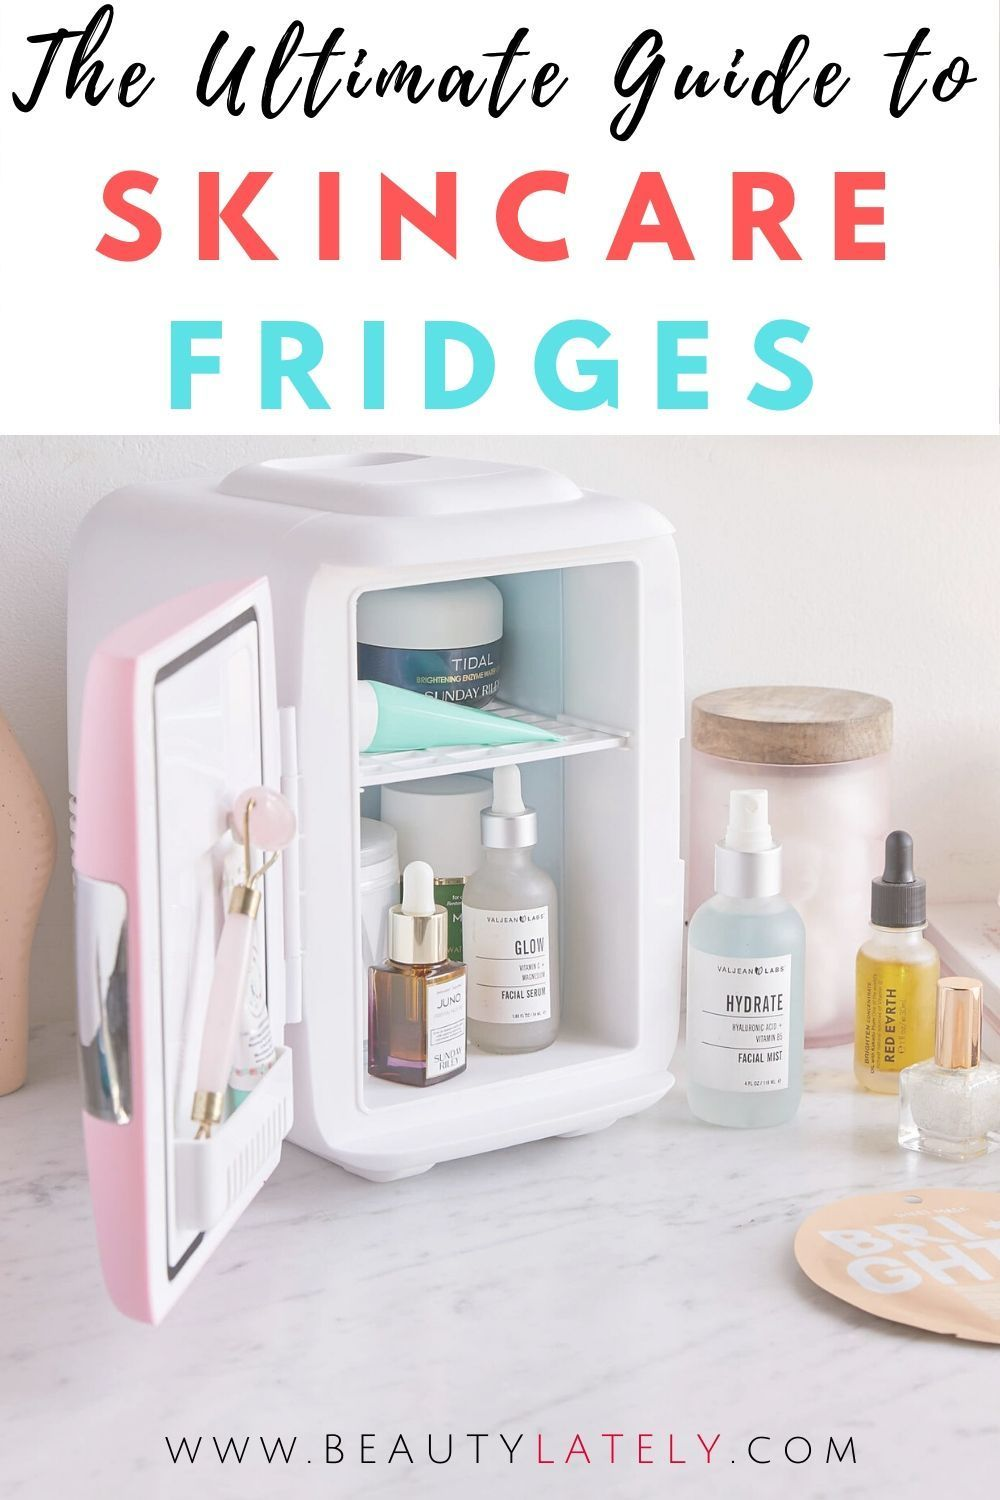 Skincare Fridges Do You Really Need One In 2020 Skin Care Skin Care Brands Skincare Video